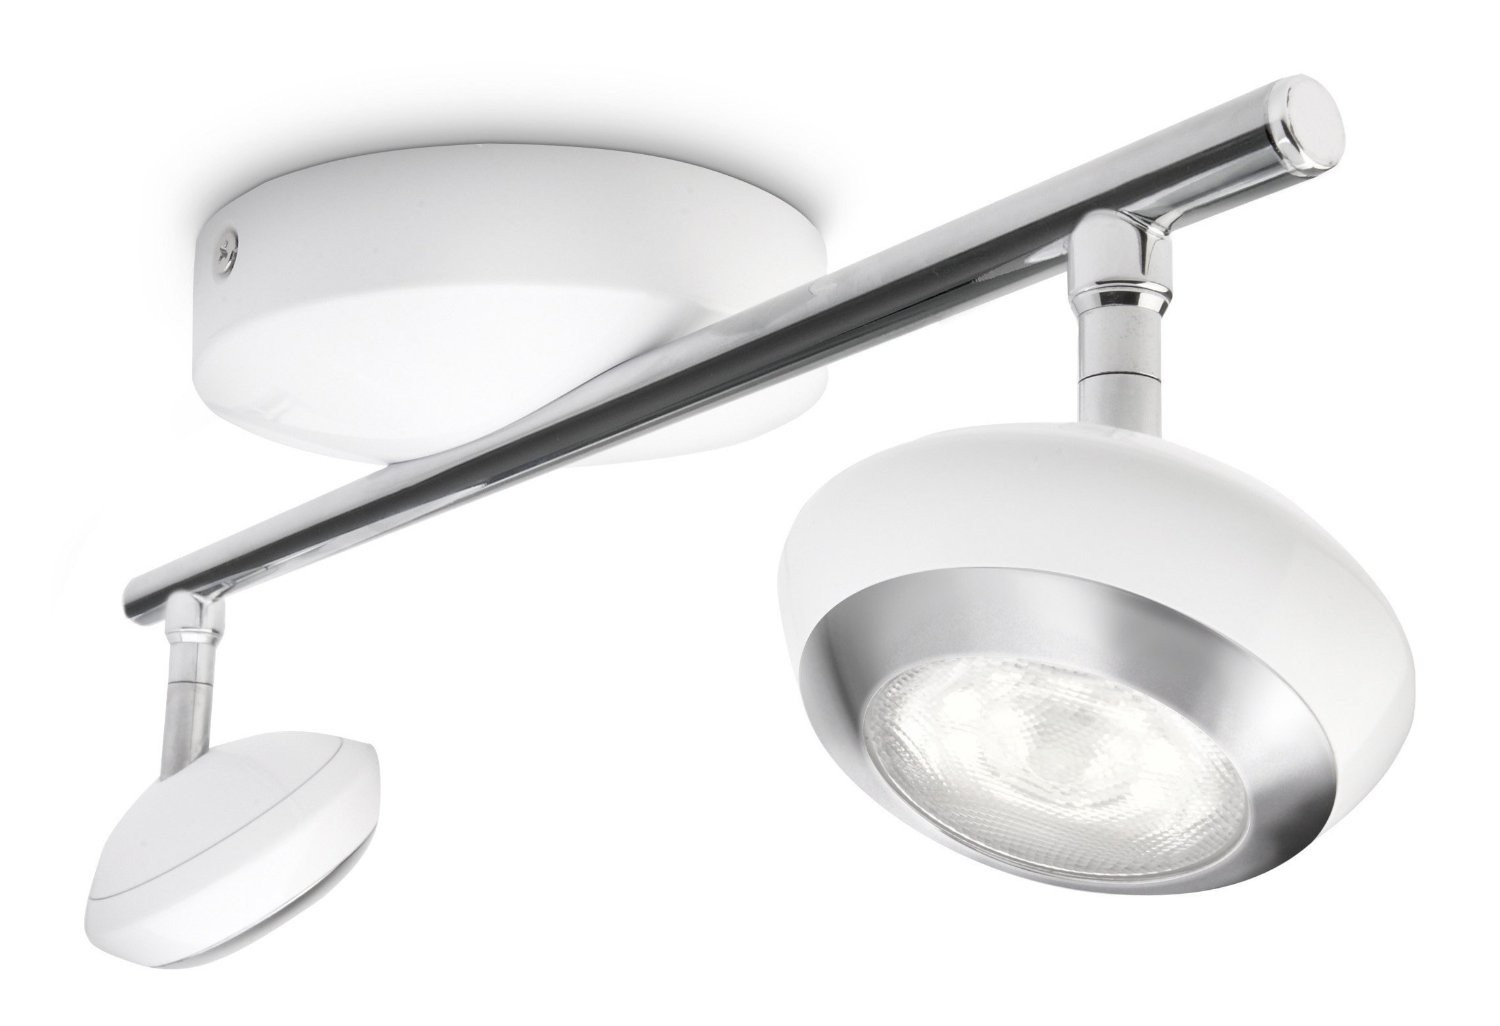 Plafoniera Led Philips : Philips power led binario faretti spot faretto moderno plafoniera